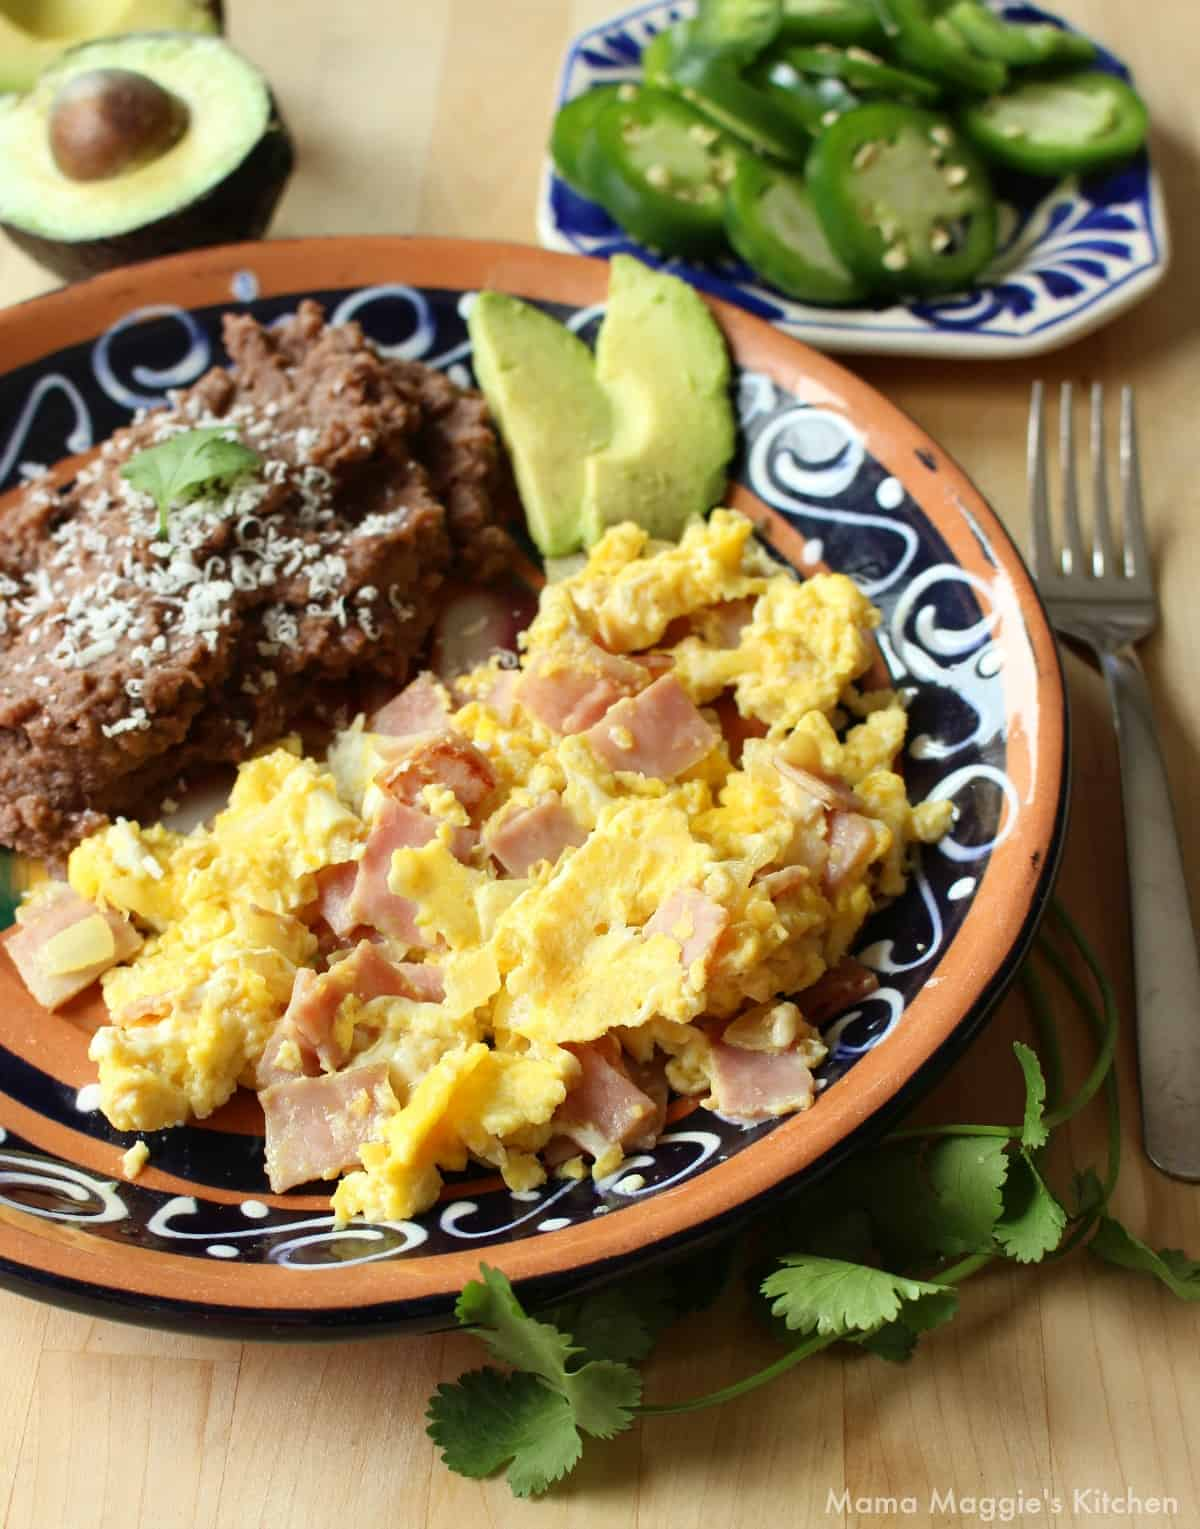 Huevos con Jamon served on a plate next to refried beans and avocado slices.